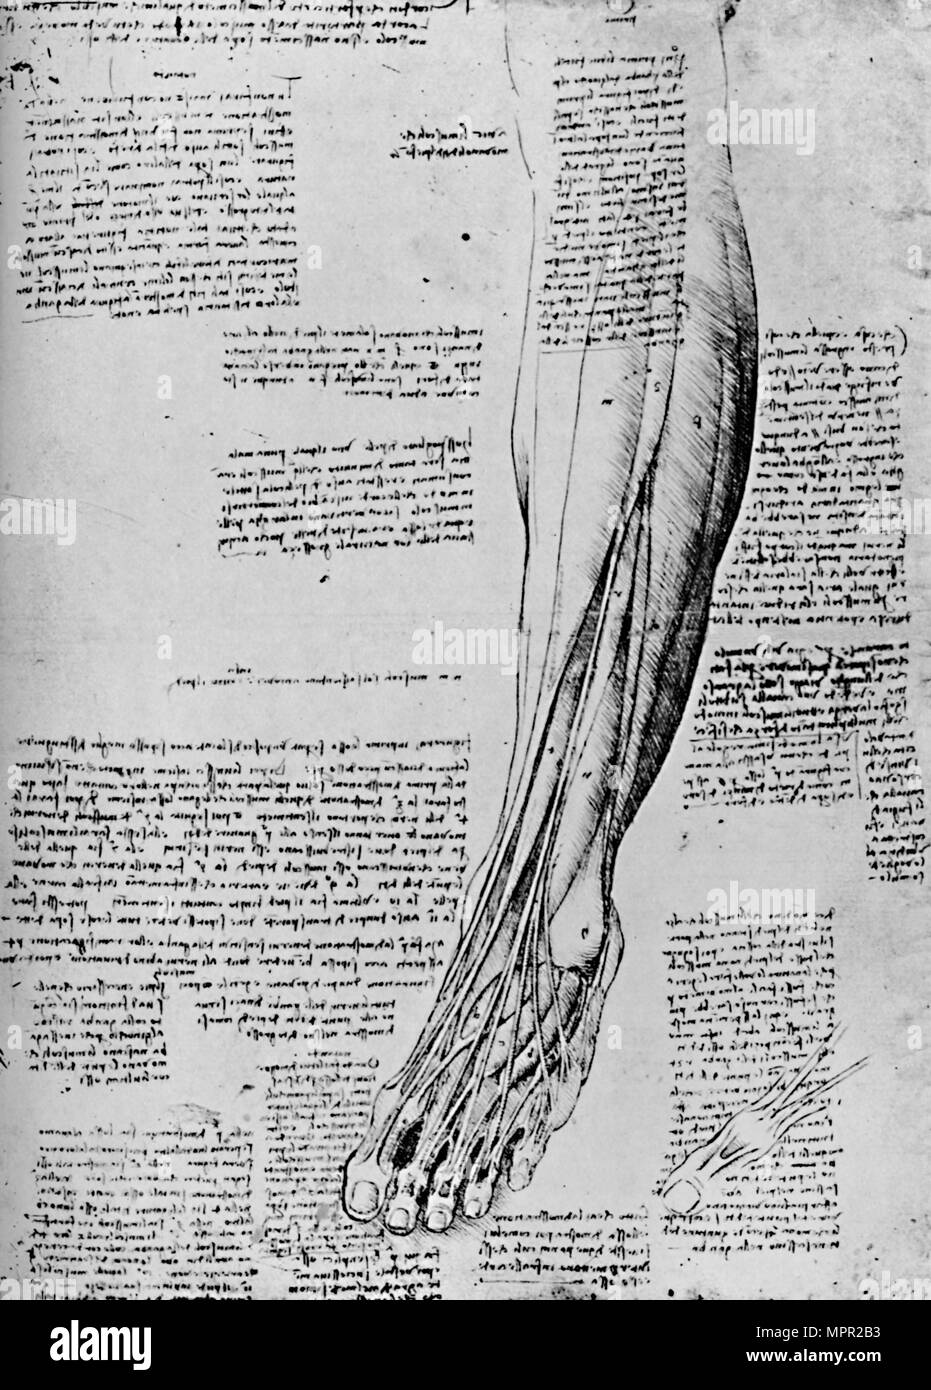 'Anatomical Study of Muscles of Foot', 1928. Artist: Leonardo da Vinci. - Stock Image